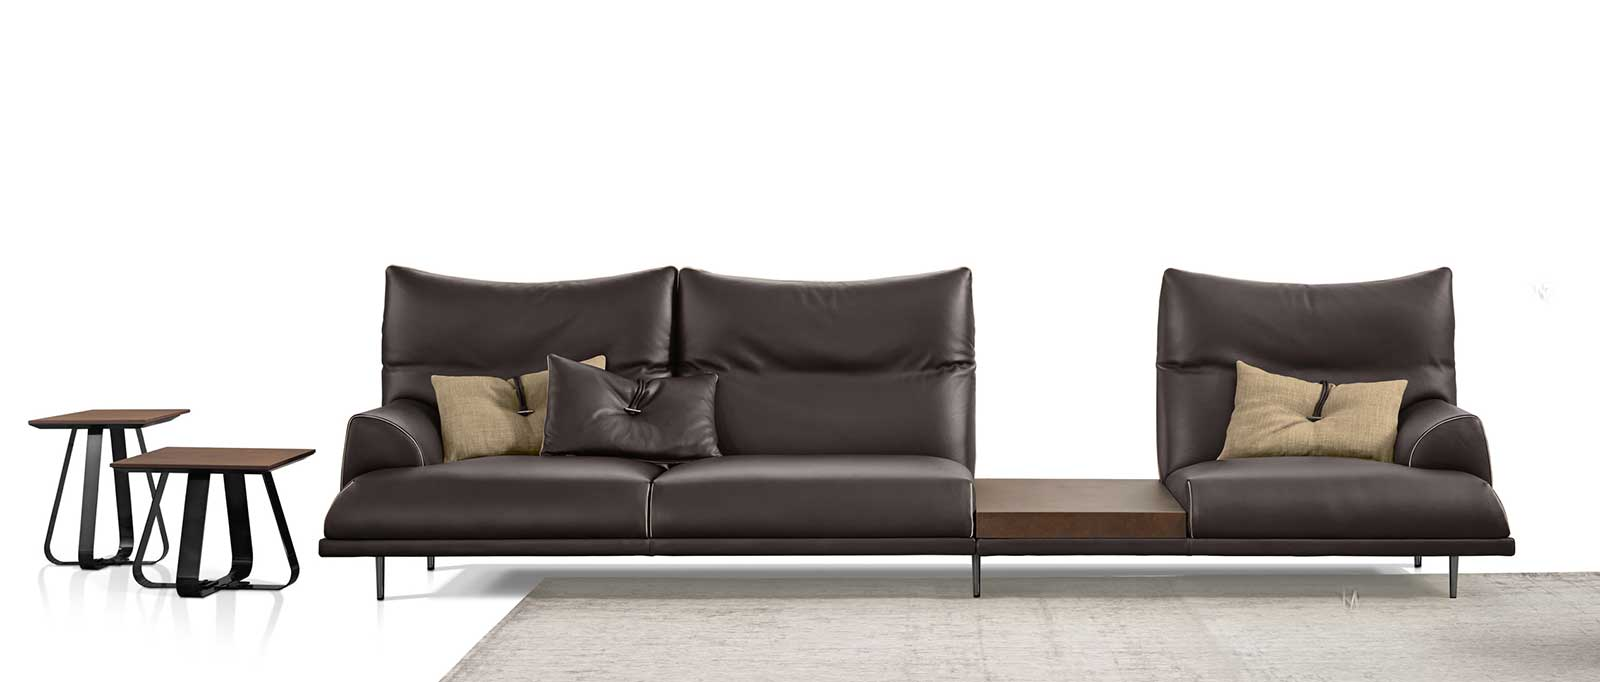 - Wolf Linear Leather Sofa Shop Online Italy Dream Design